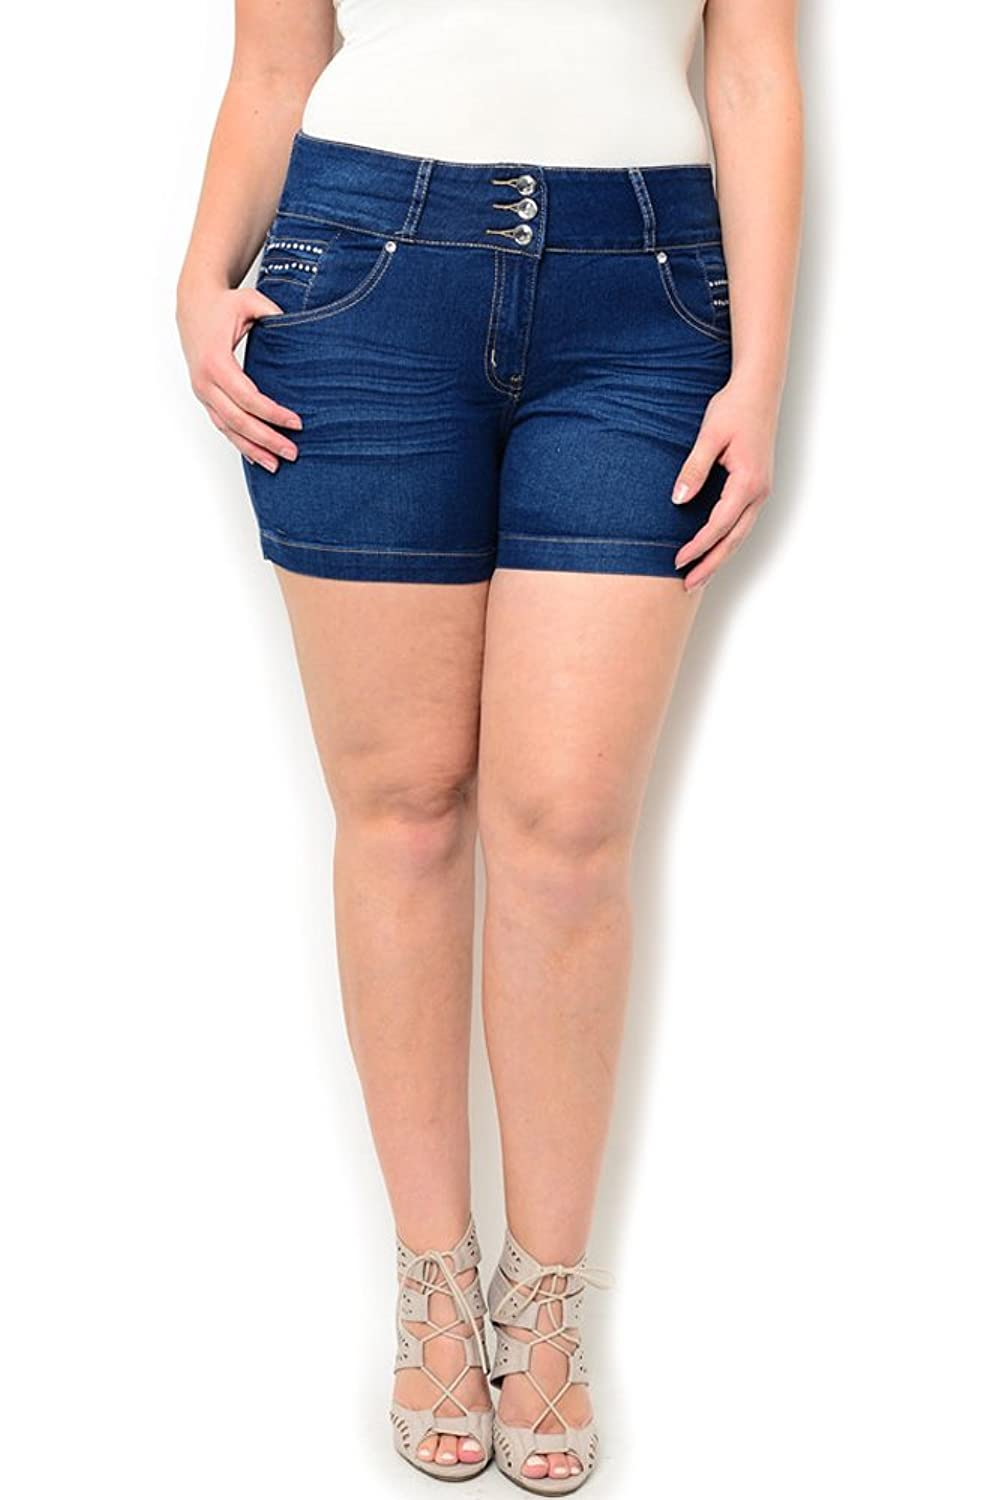 DHStyles Women's Plus Size 3 Button Jeweled Mini Denim Shorts